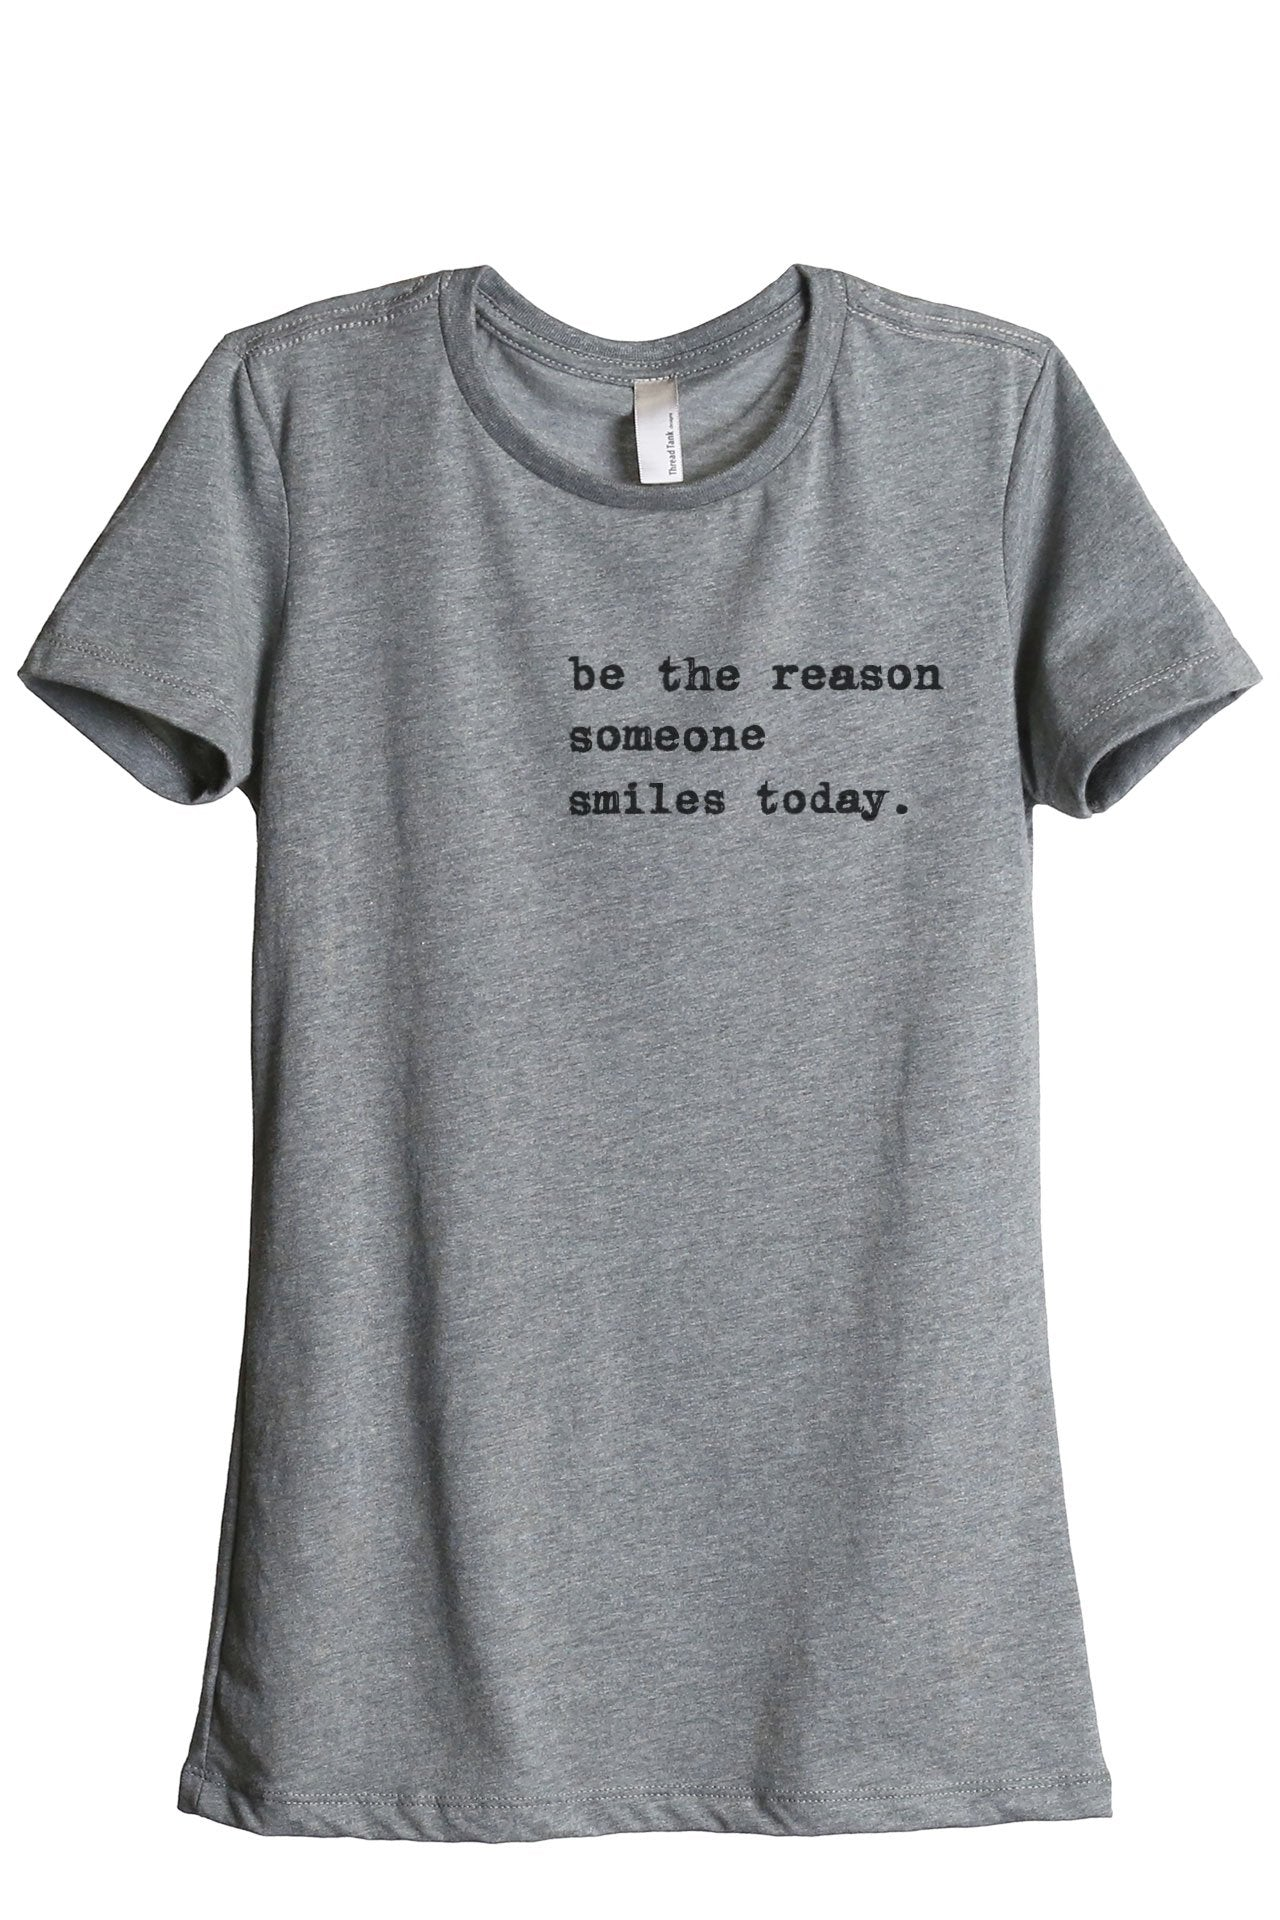 Be The Reason Someone Smiles Today - Thread Tank | Stories You Can Wear | T-Shirts, Tank Tops and Sweatshirts